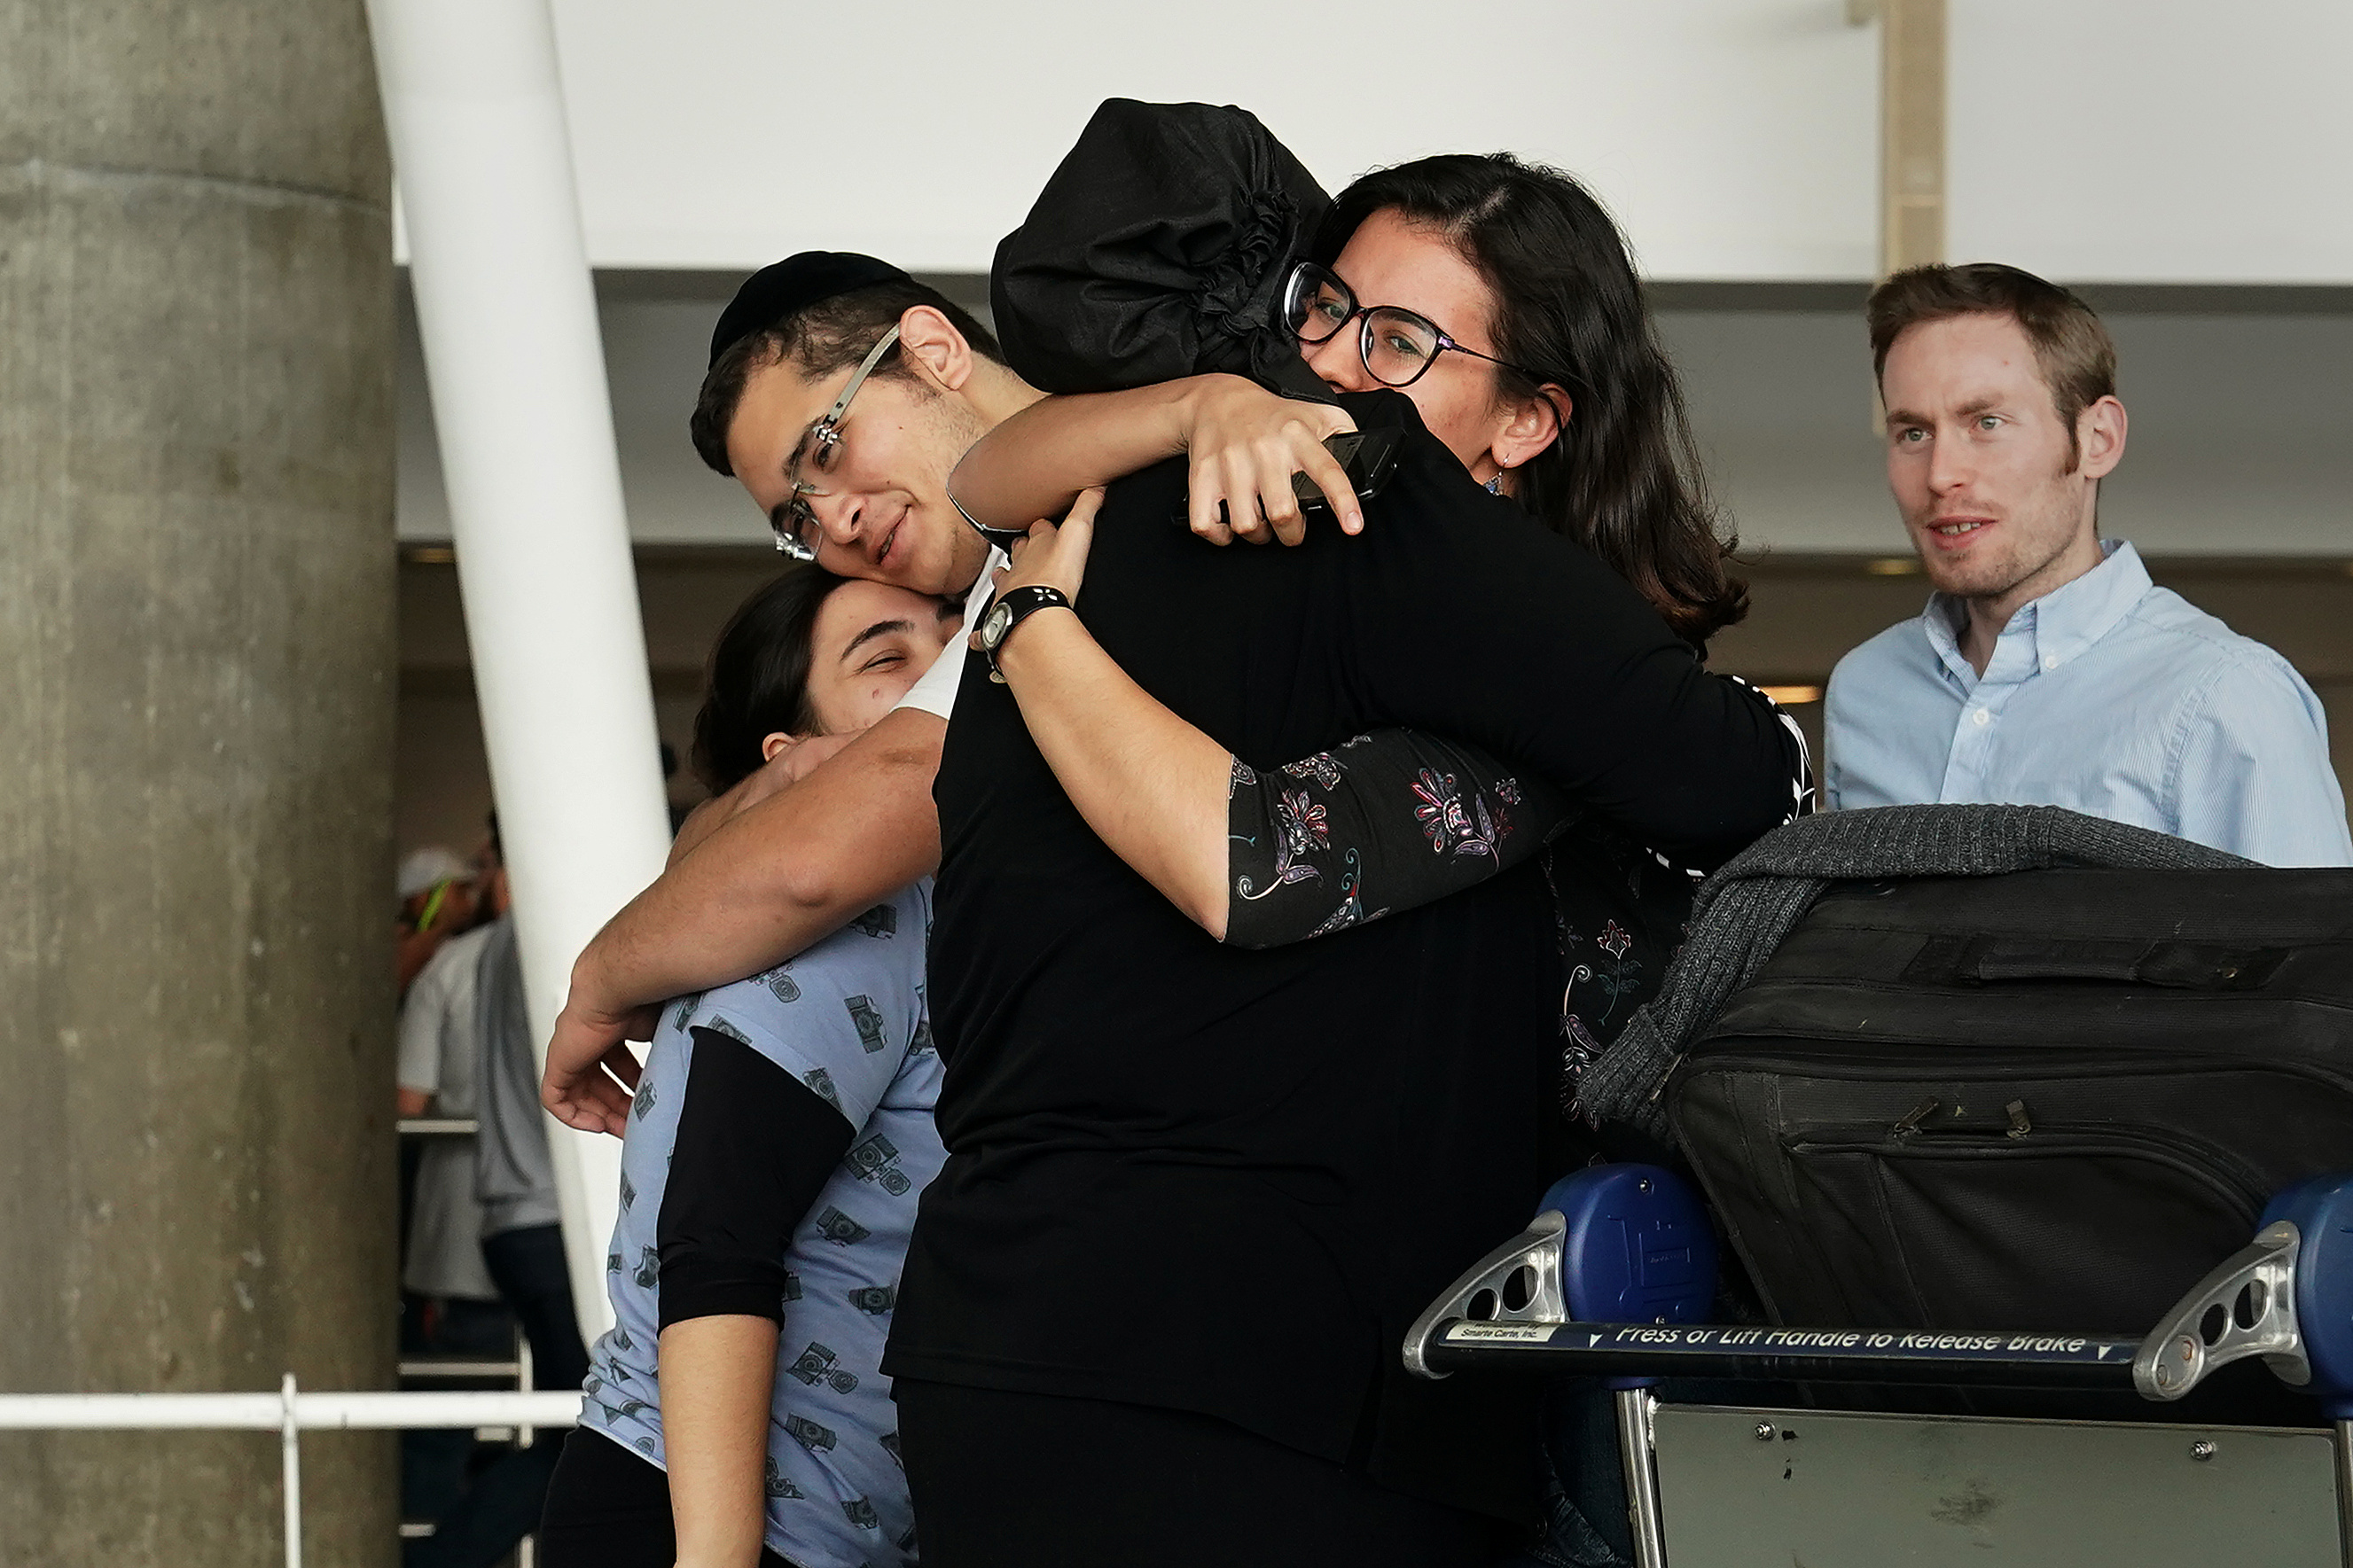 People hug after arriving in advance of the incoming travel ban to the U.S. at John F. Kennedy airport in the Queens borough of New York City, New York, U.S. June 29, 2017.   REUTERS/Carlo Allegri     TPX IMAGES OF THE DAY - RC1146F1FDC0